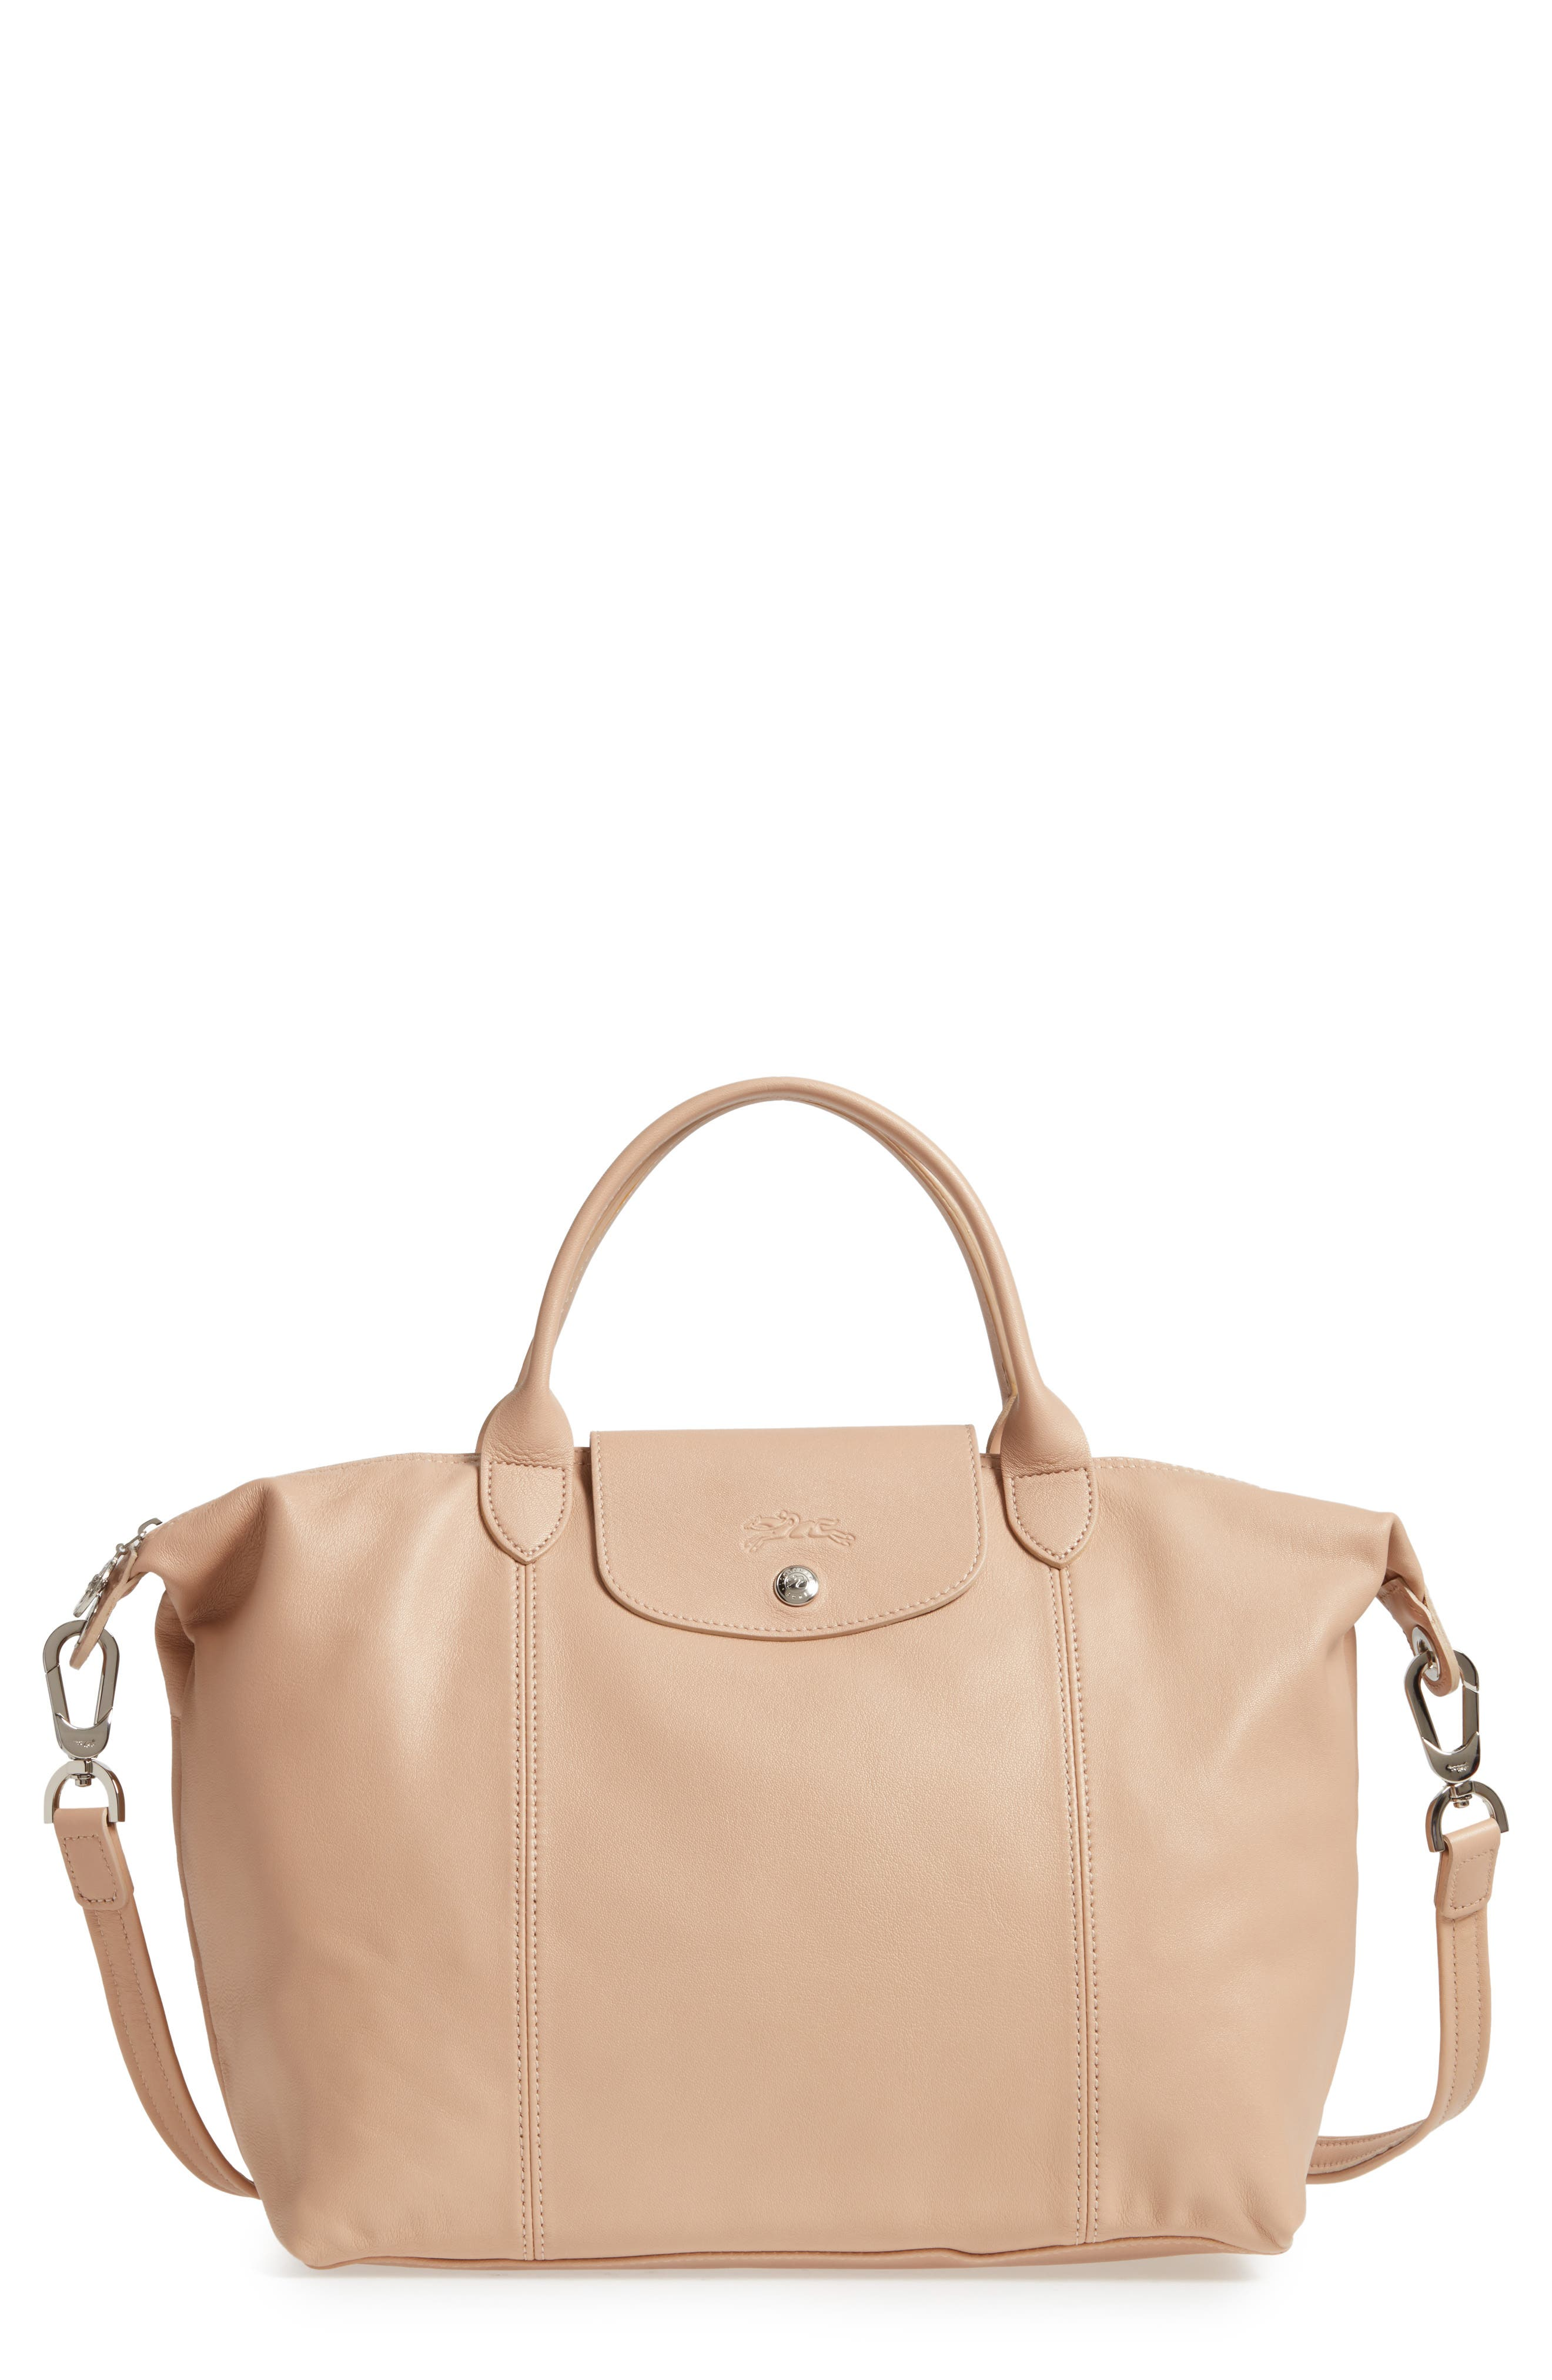 Longchamp Medium 'Le Pliage Cuir' Leather Top Handle Tote